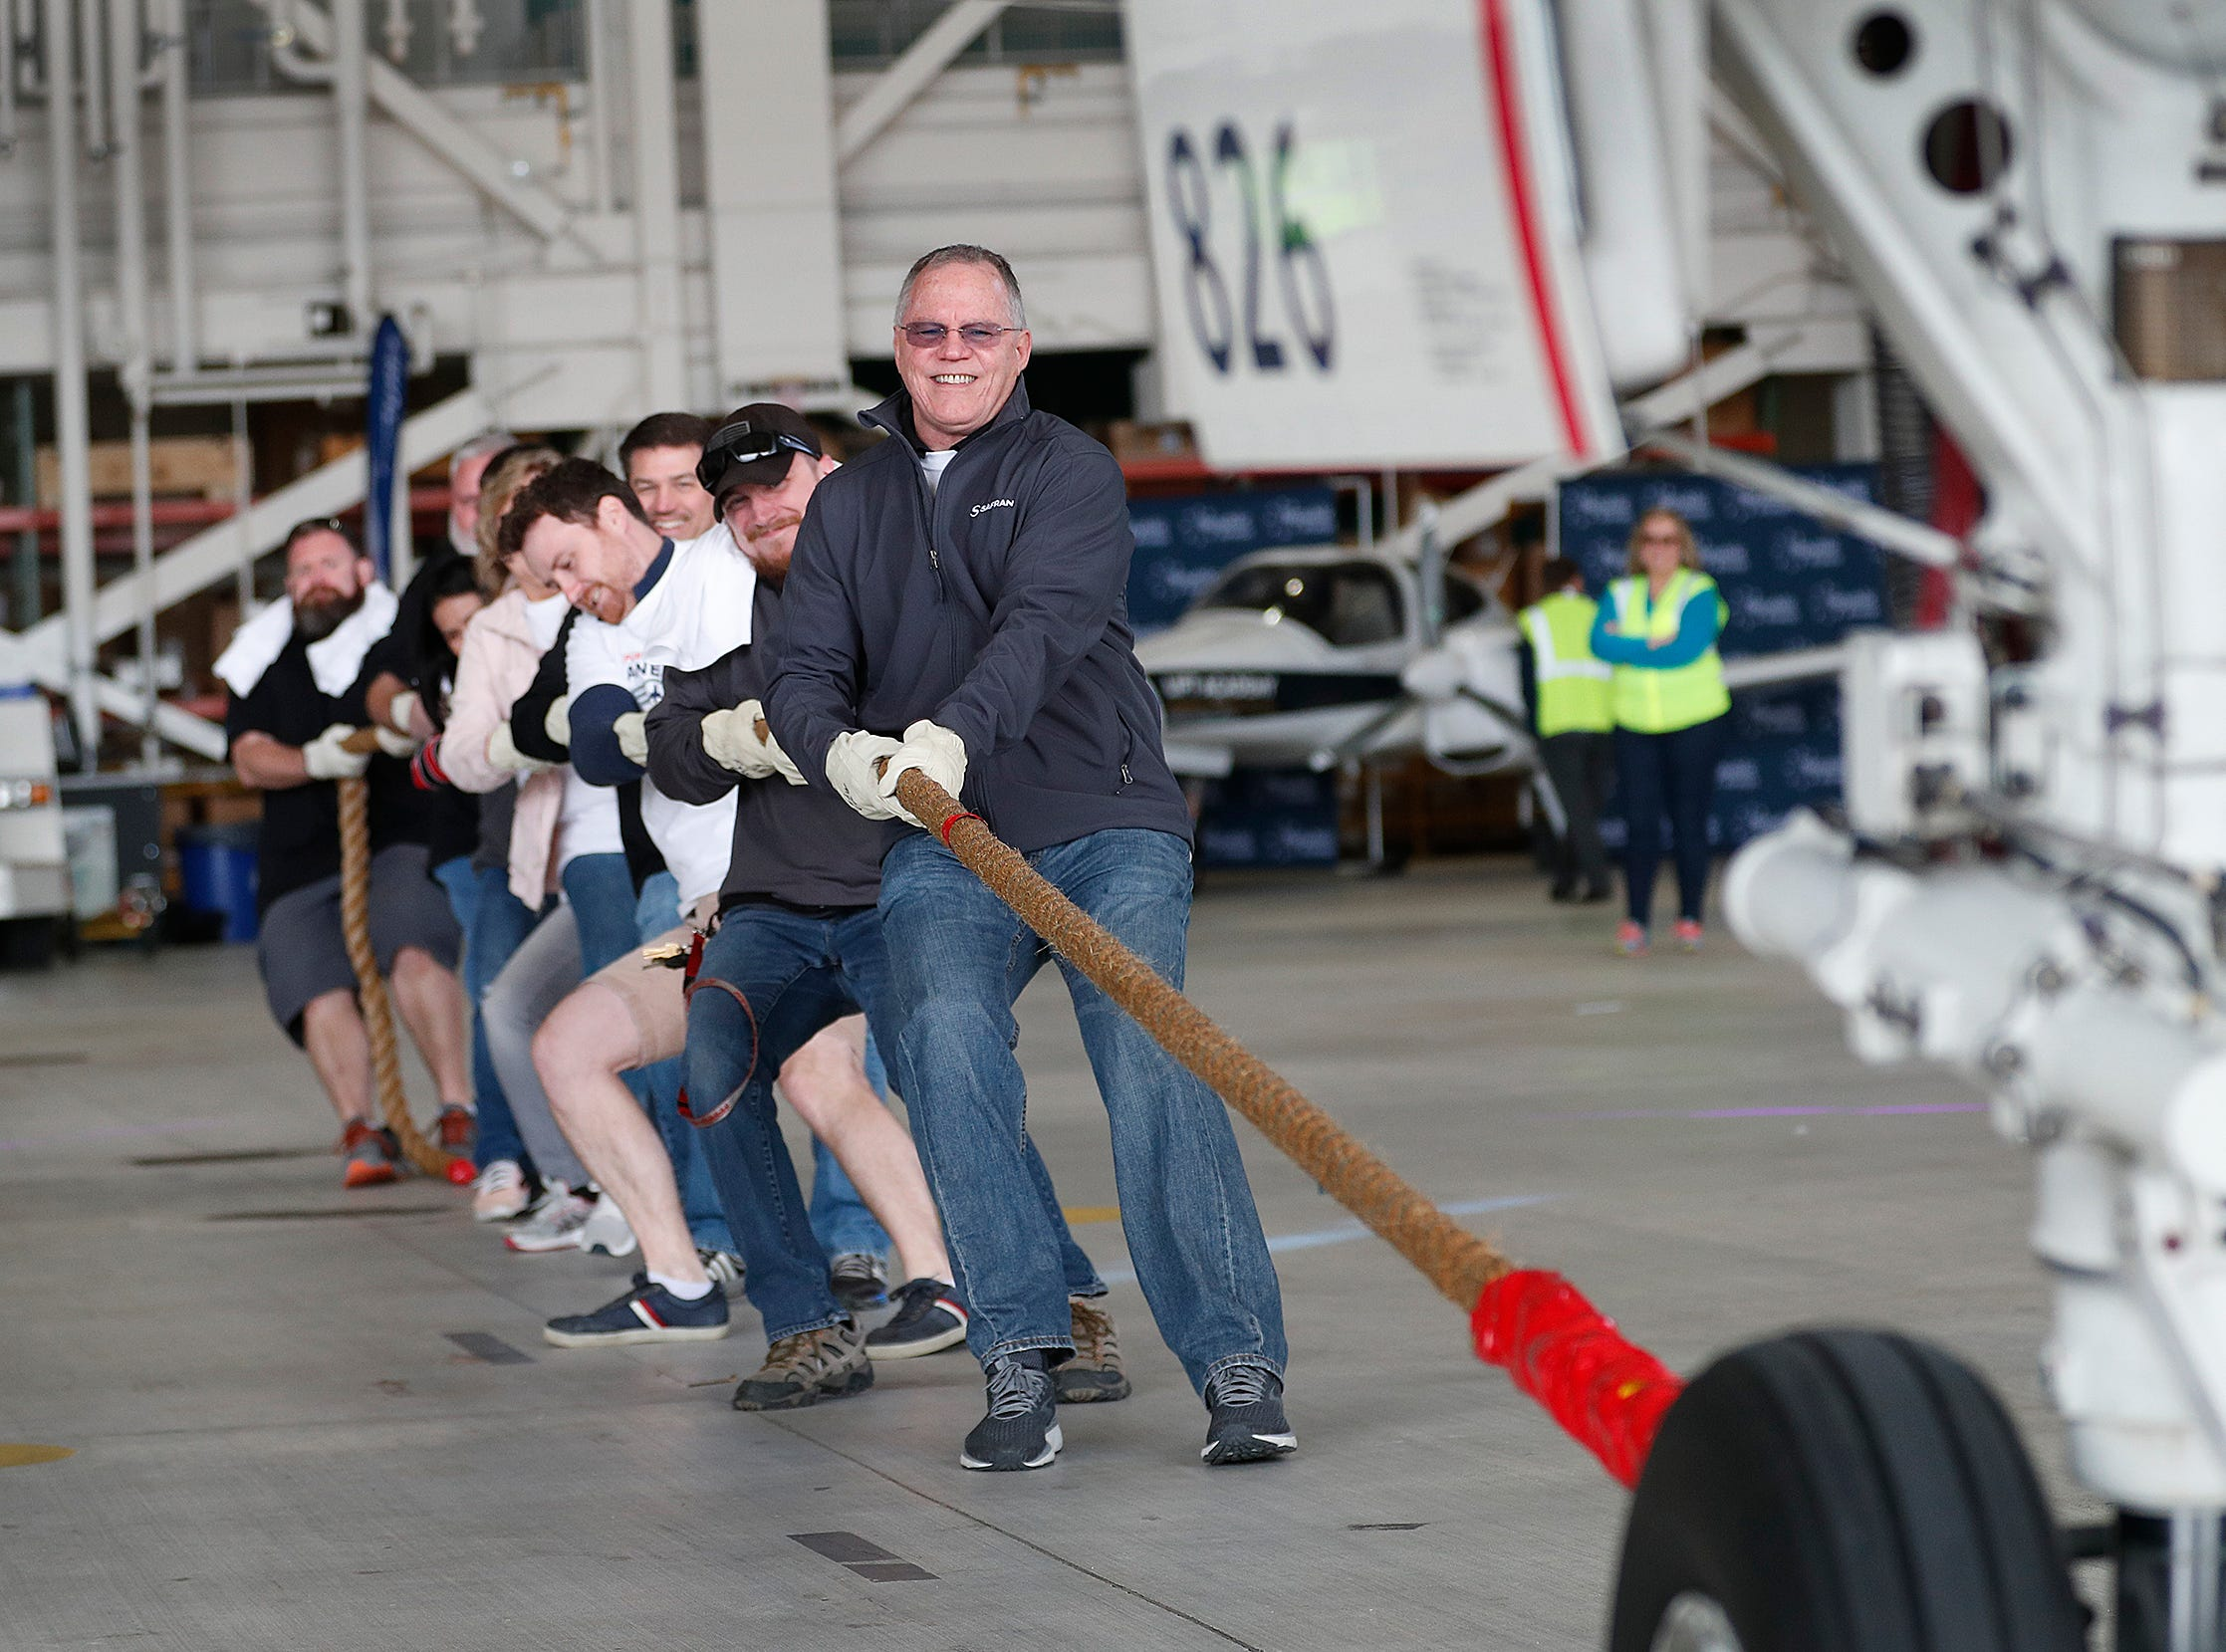 Greg Adkins along with his team from Safran Narcelles Servcies Americas pulls an Embraer 170/175 aircraft 15 feet during the 9th Annual Republic Airways Plane Pull at the Republic Airways Hanger at the Indianapolis International Airport on Saturday, April 13, 2019.